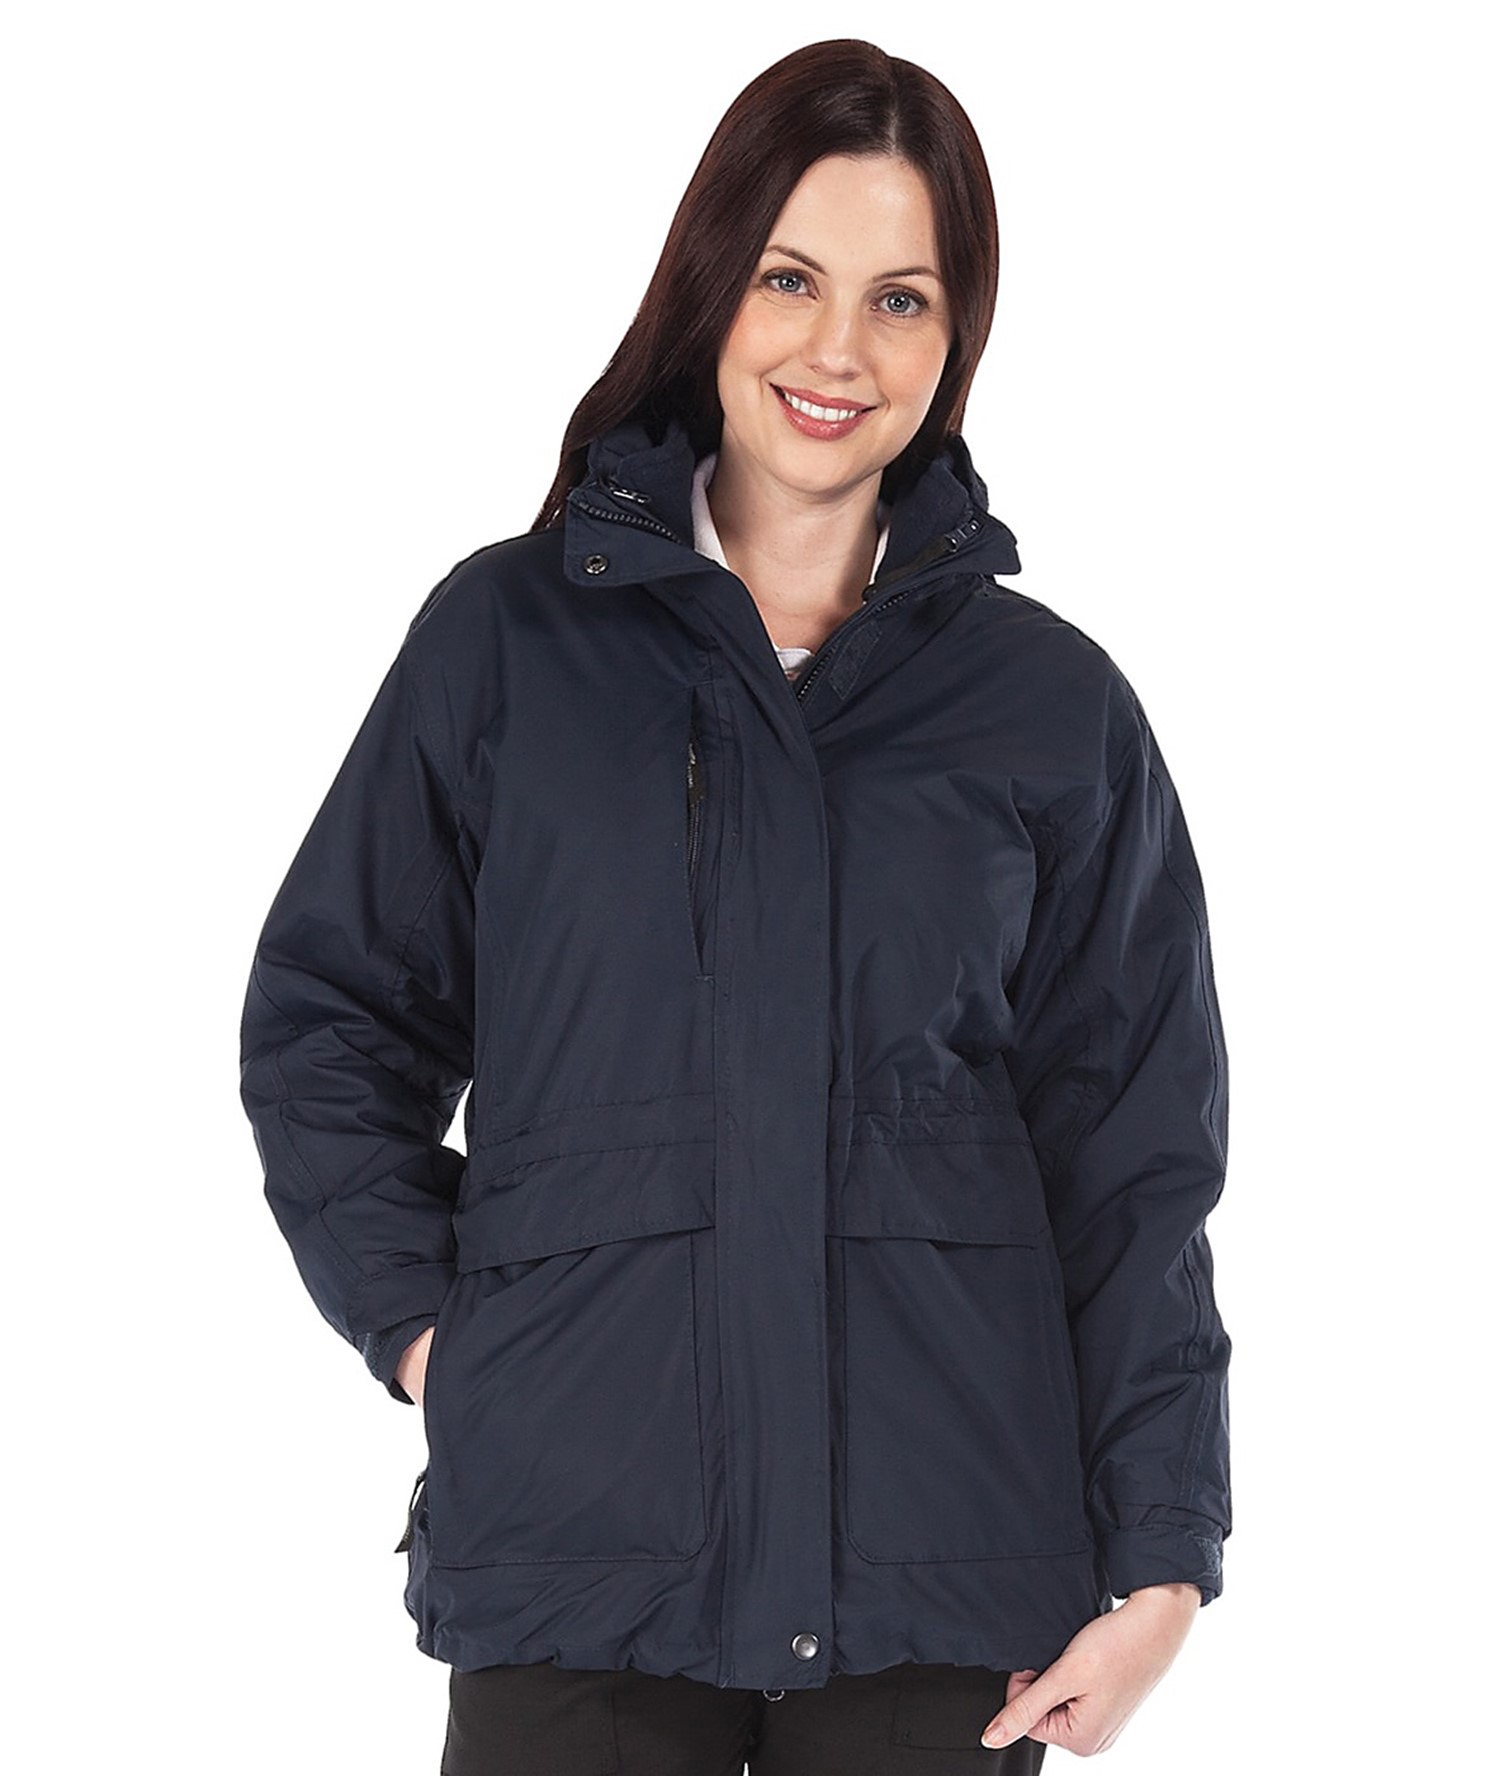 WOMEN'S BREATHABLE 3-IN-1 JACKET REGATTA BENSON II